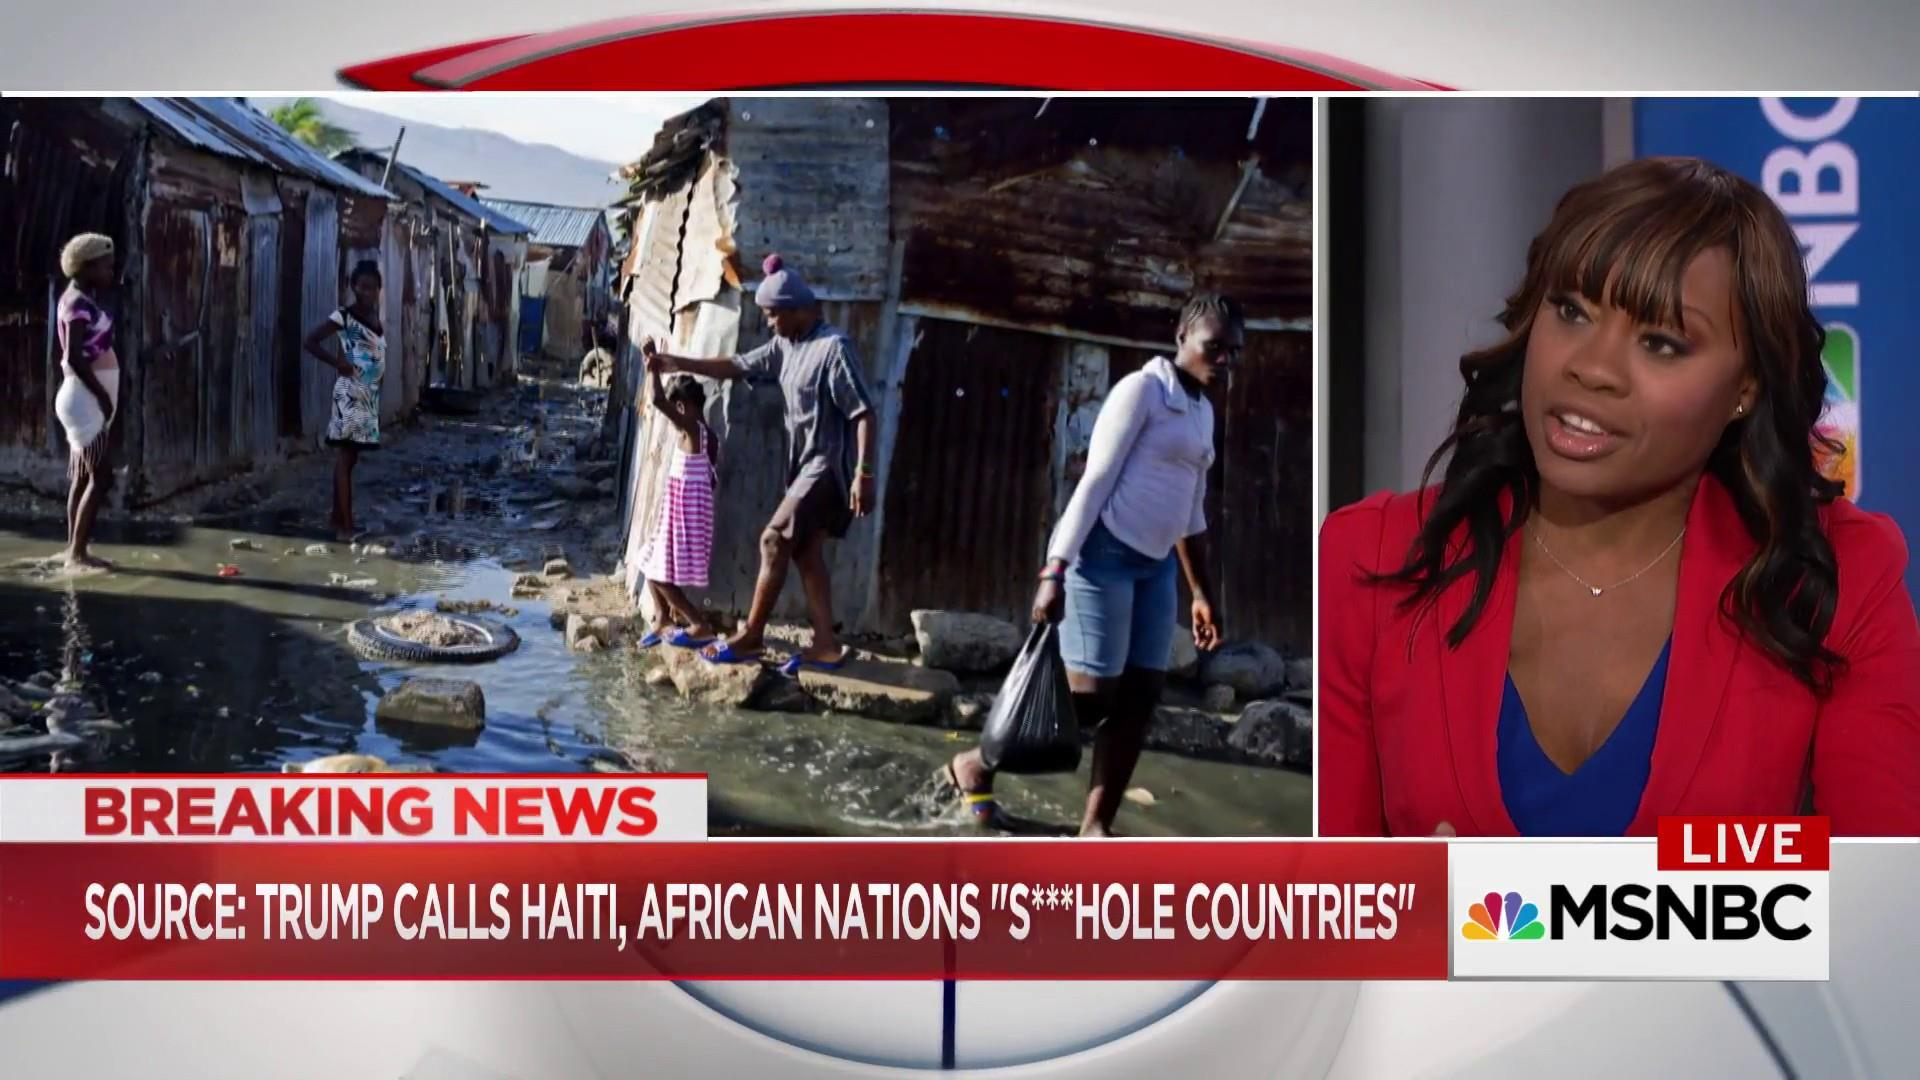 Charles: Here's what you should know about Haiti